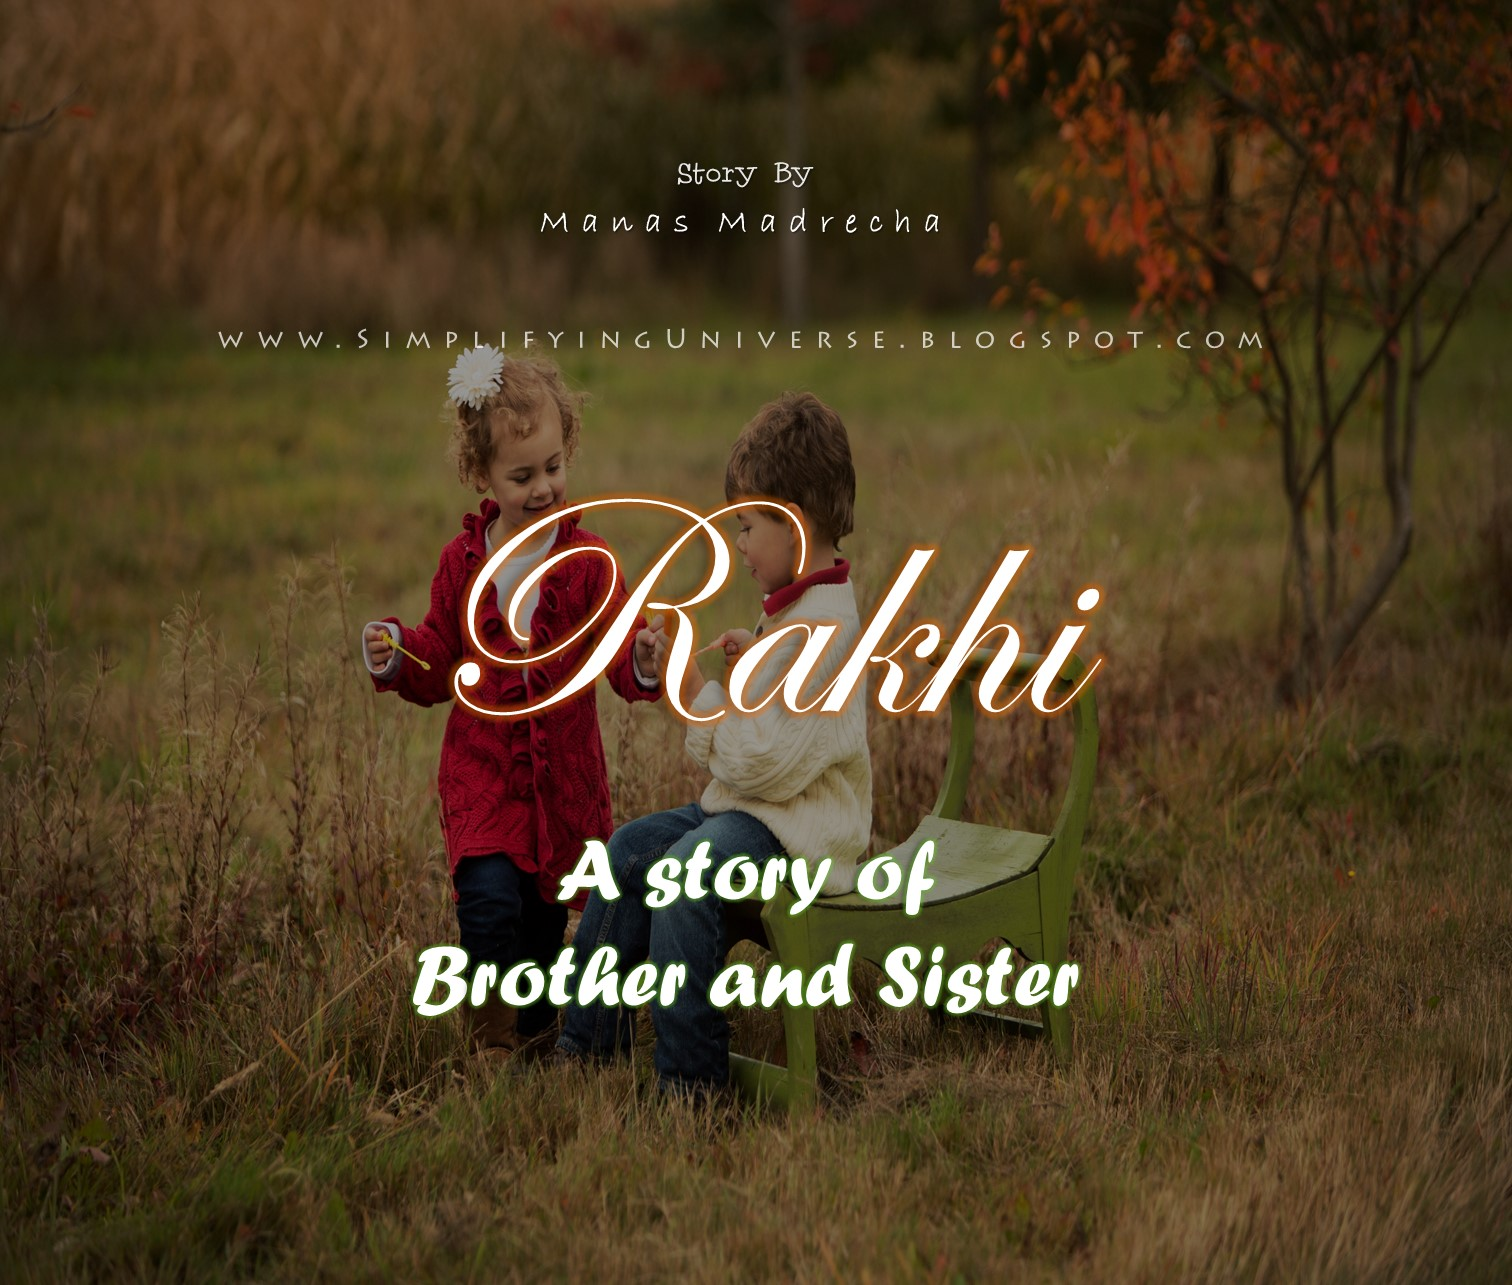 Brother And Sister Love Quotes Rakhi  A Story Of Brother And Sister  Manas Madrecha